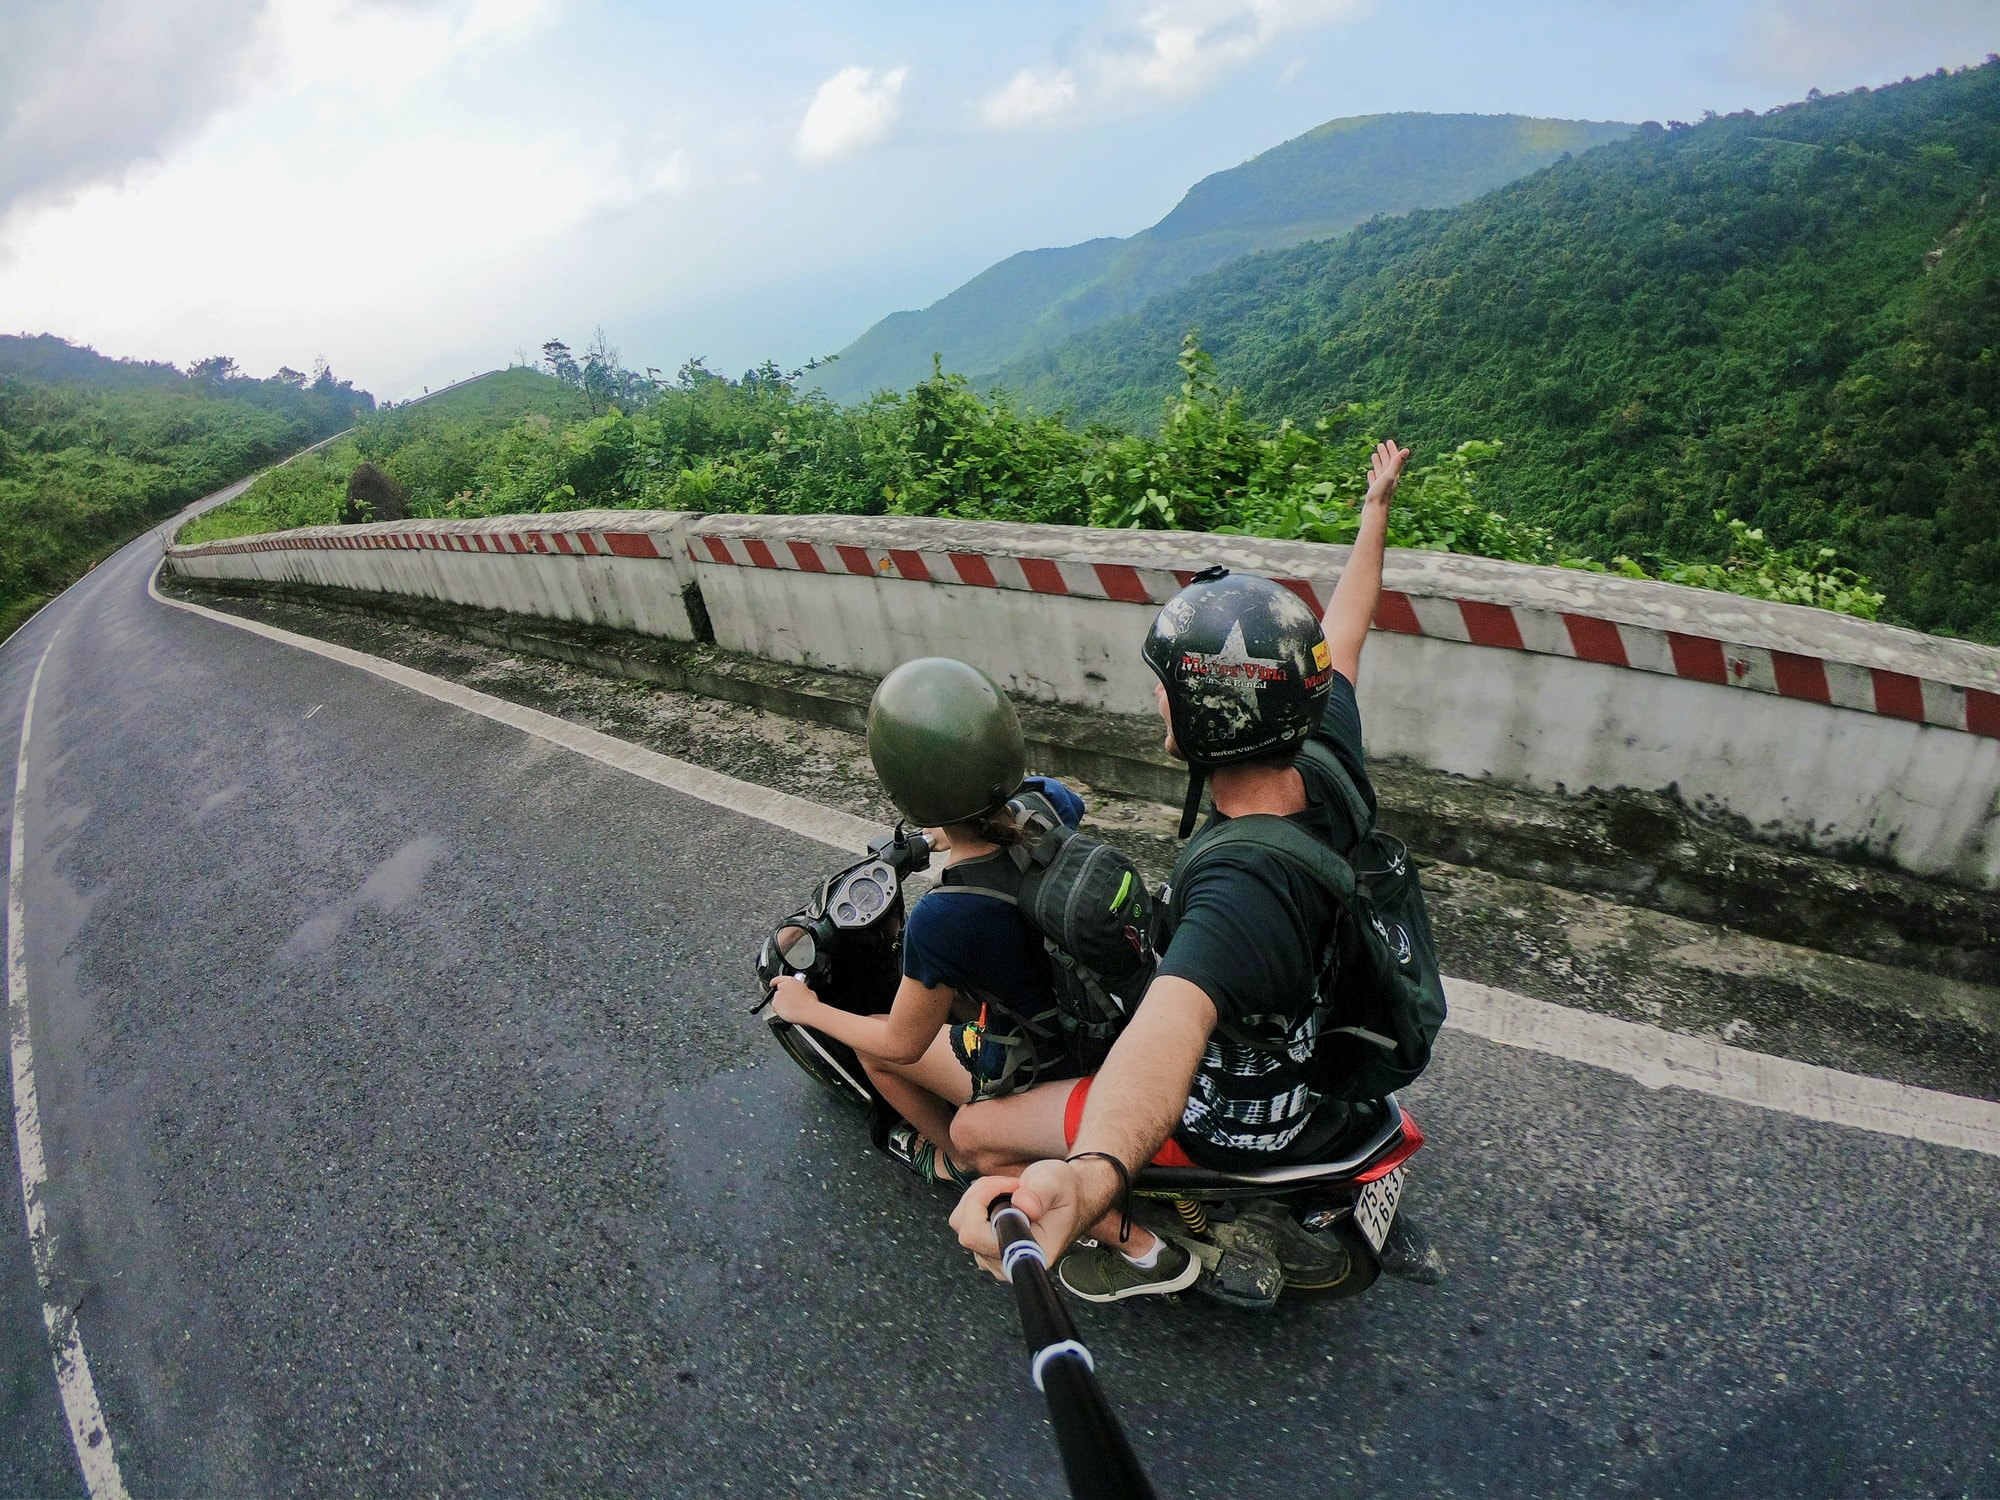 This was my favorite memory and experience in Vietnam. We traveled from Hoi An to Hue via motorbike along the hai van pass. It was absolutely breathtaking and led to some unreal views and vistas.